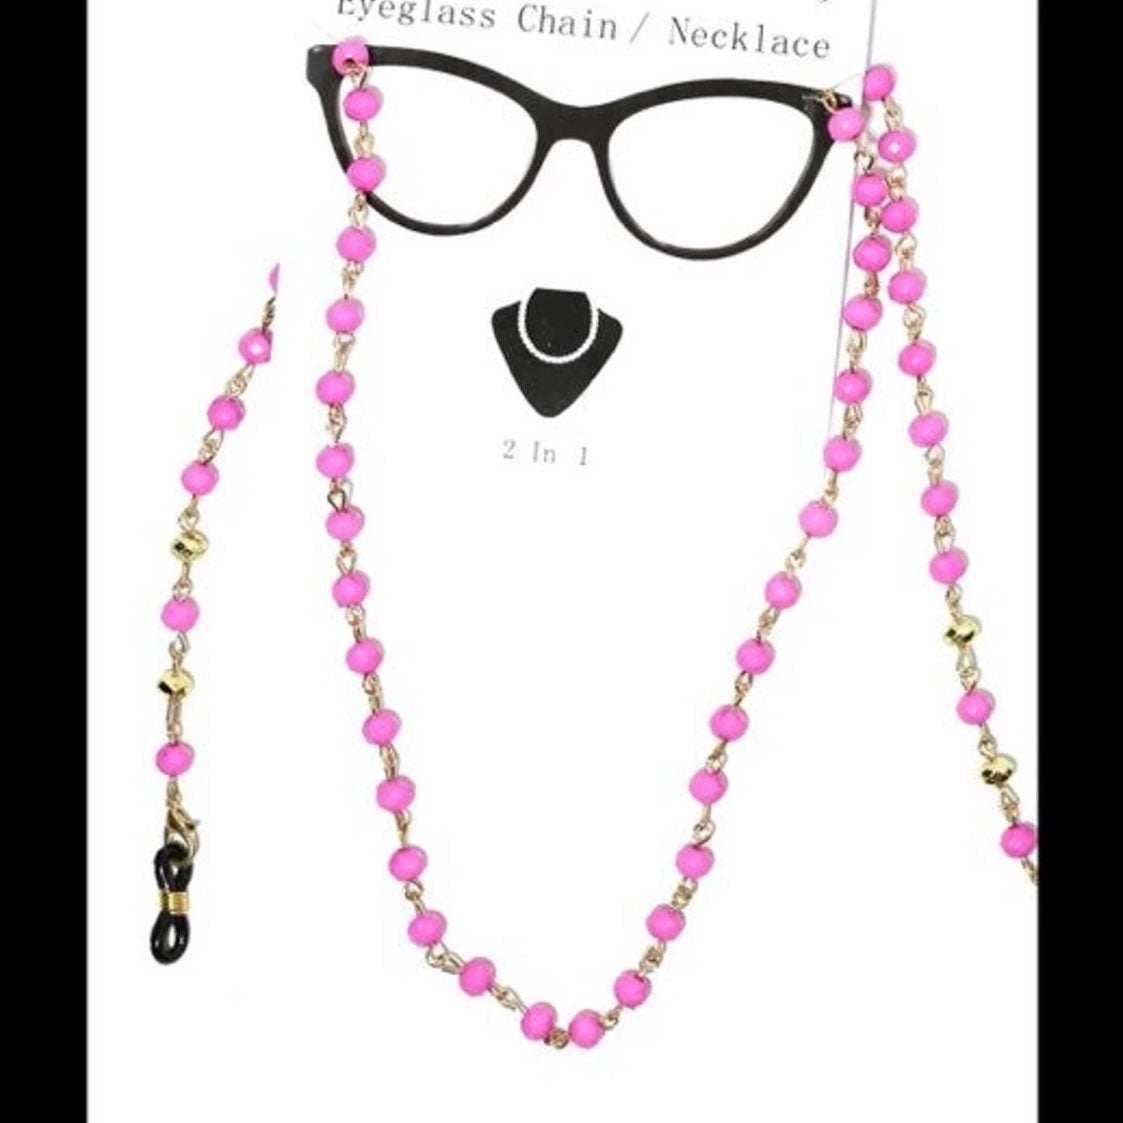 Beaded Eyeglasses Chain/ Necklace